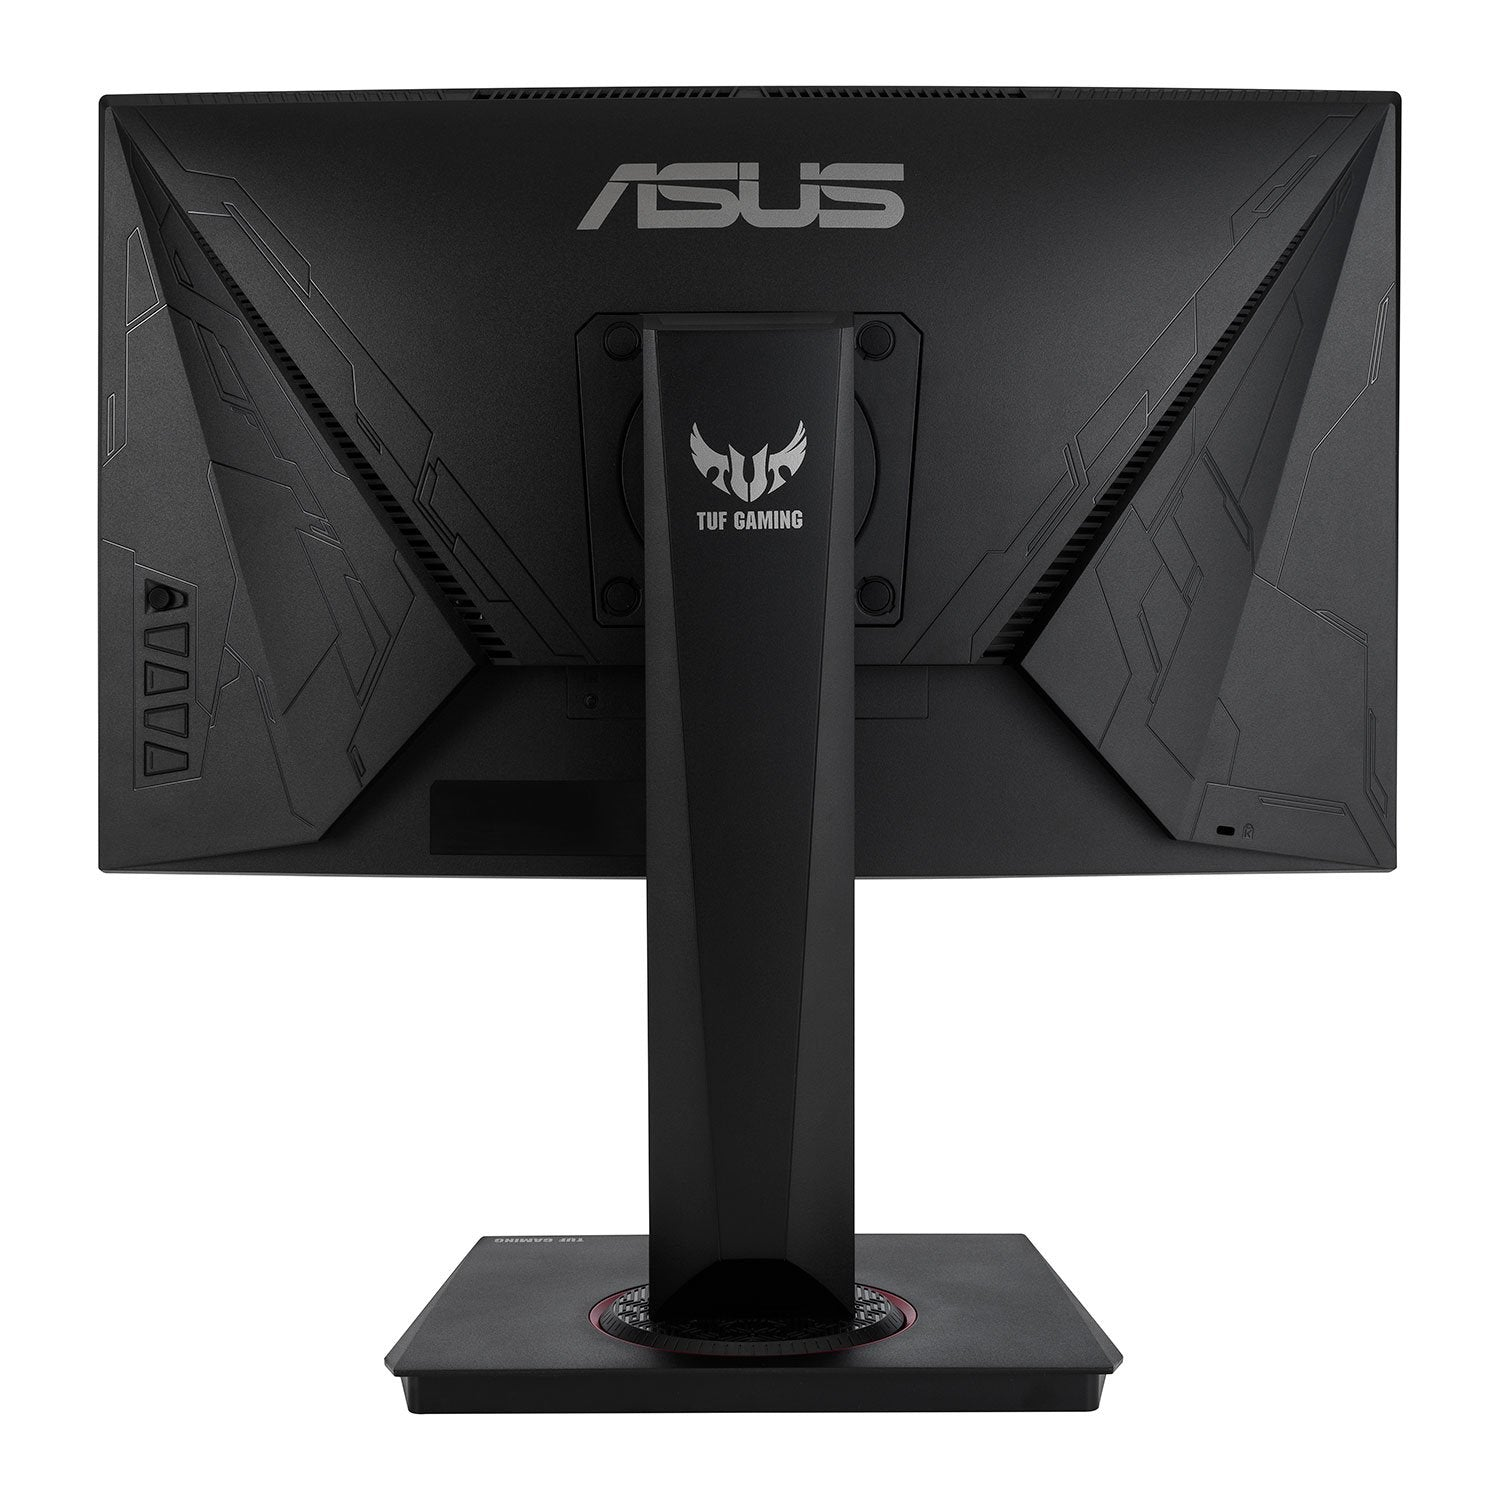 Asus TUF VG24VQ Curved Gaming Monitor 144hz, 1920x1080